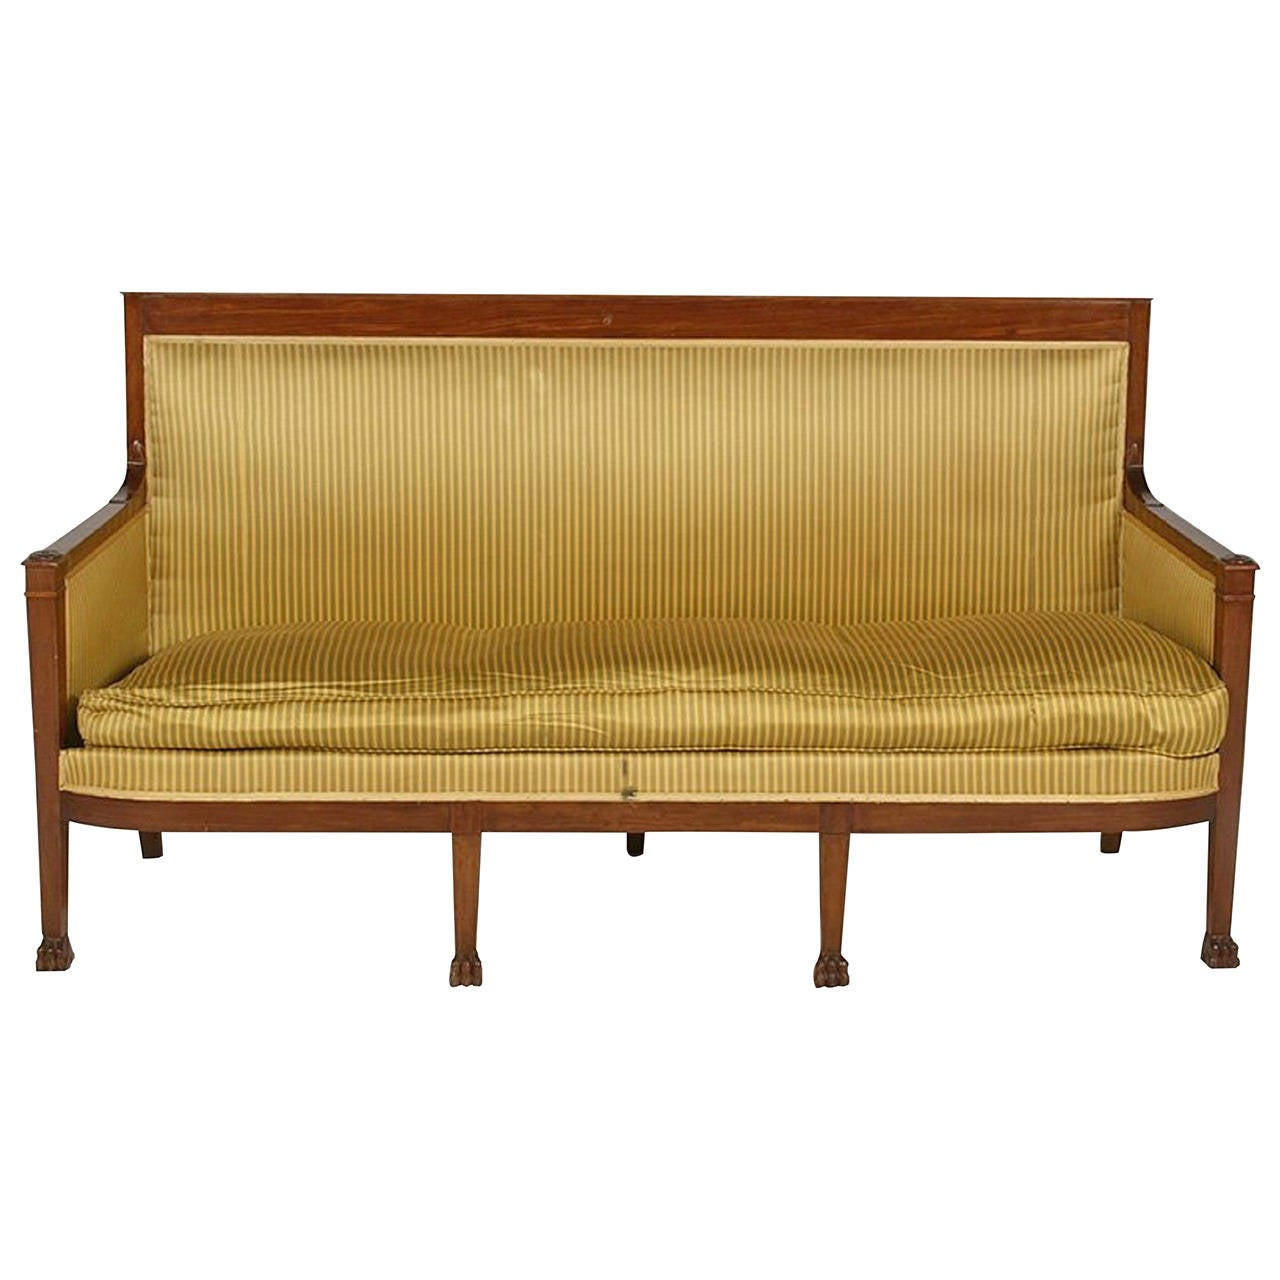 Directoire Style Upholstered Sofa With Claw Feet 19th Century For Sale At 1stdibs